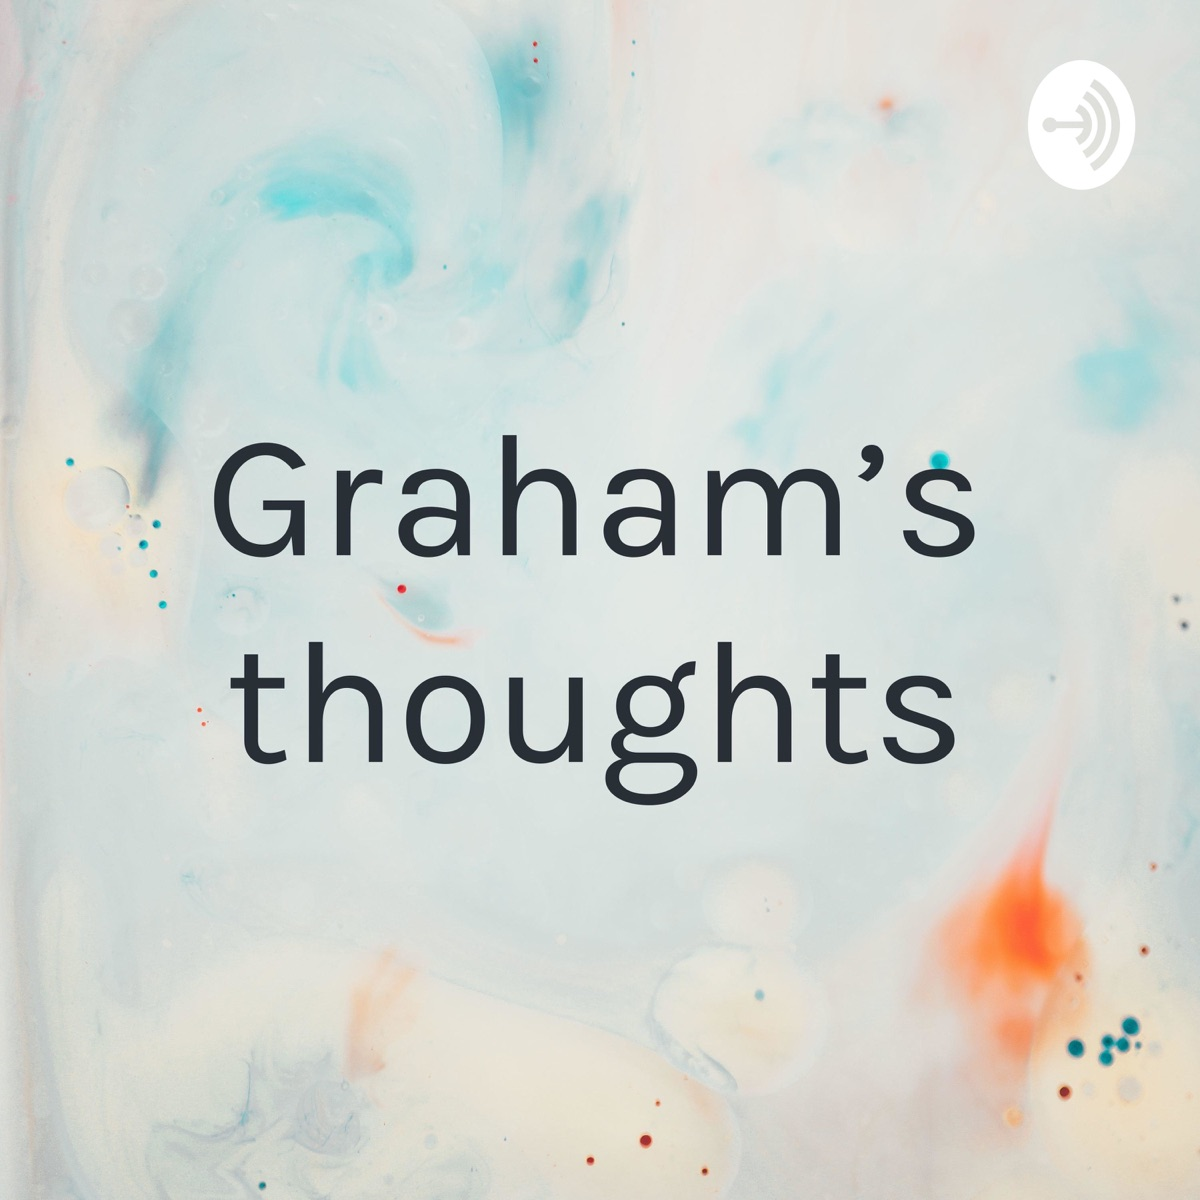 Graham's thoughts